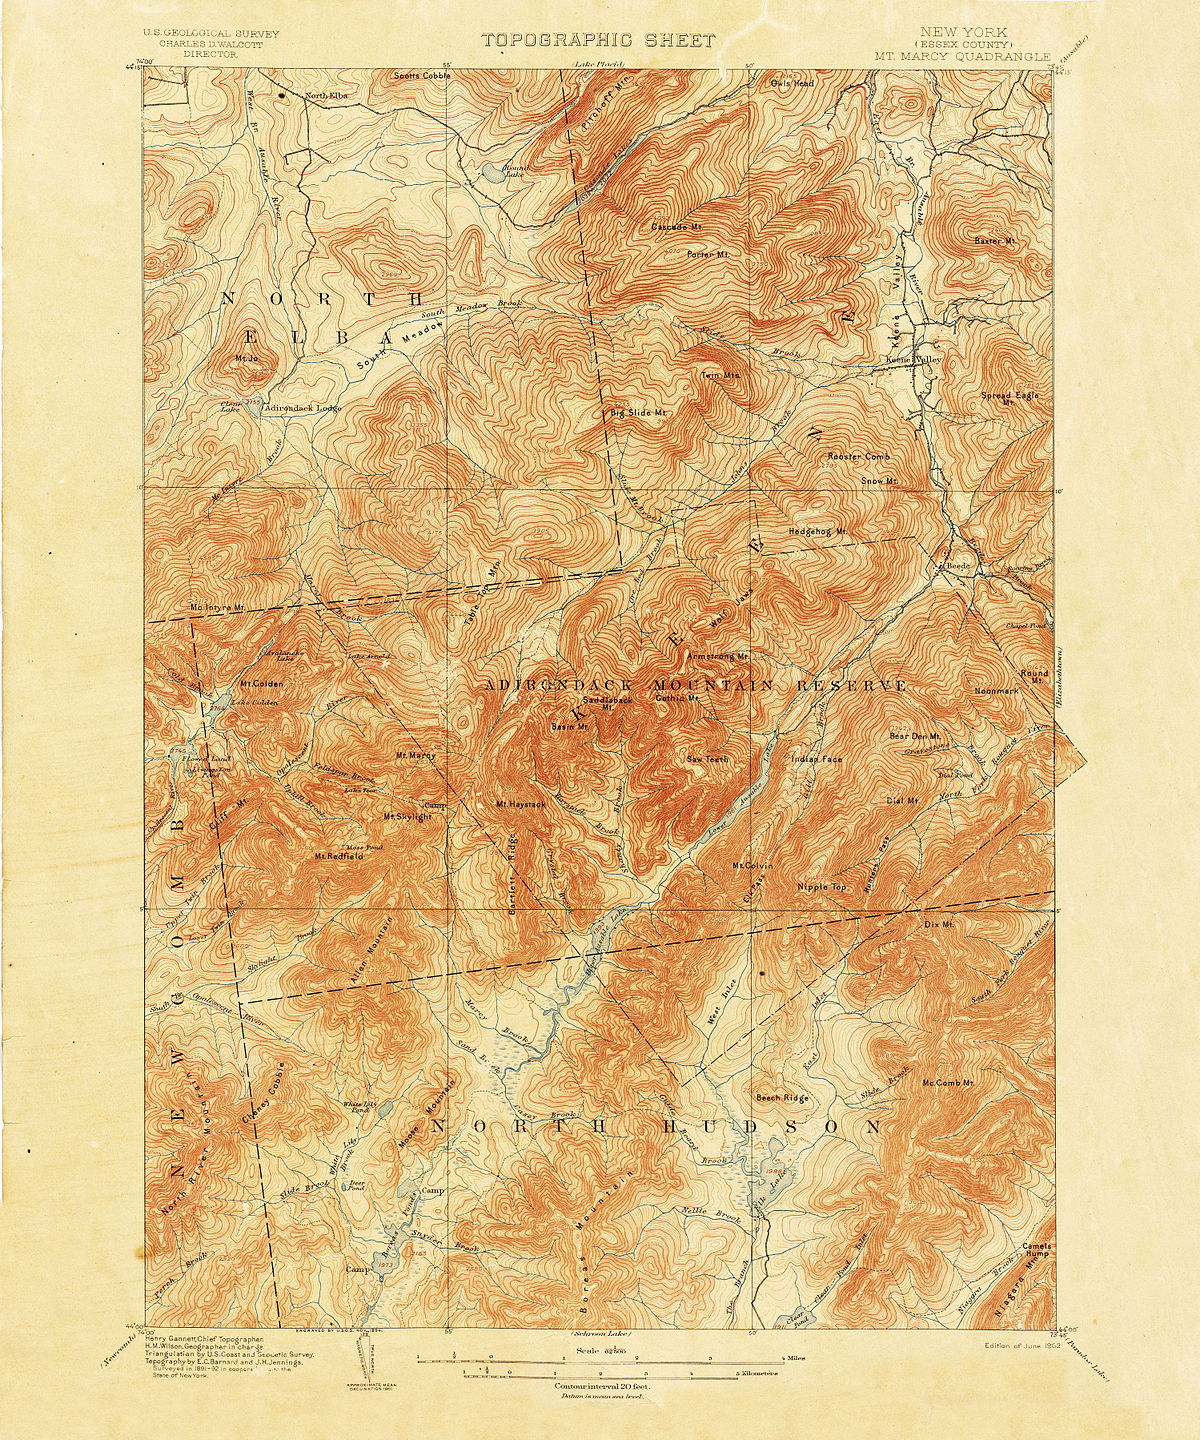 Best Of Diagram Topographic Map Example Millions Ideas Diagram - Us topographic map shapefile